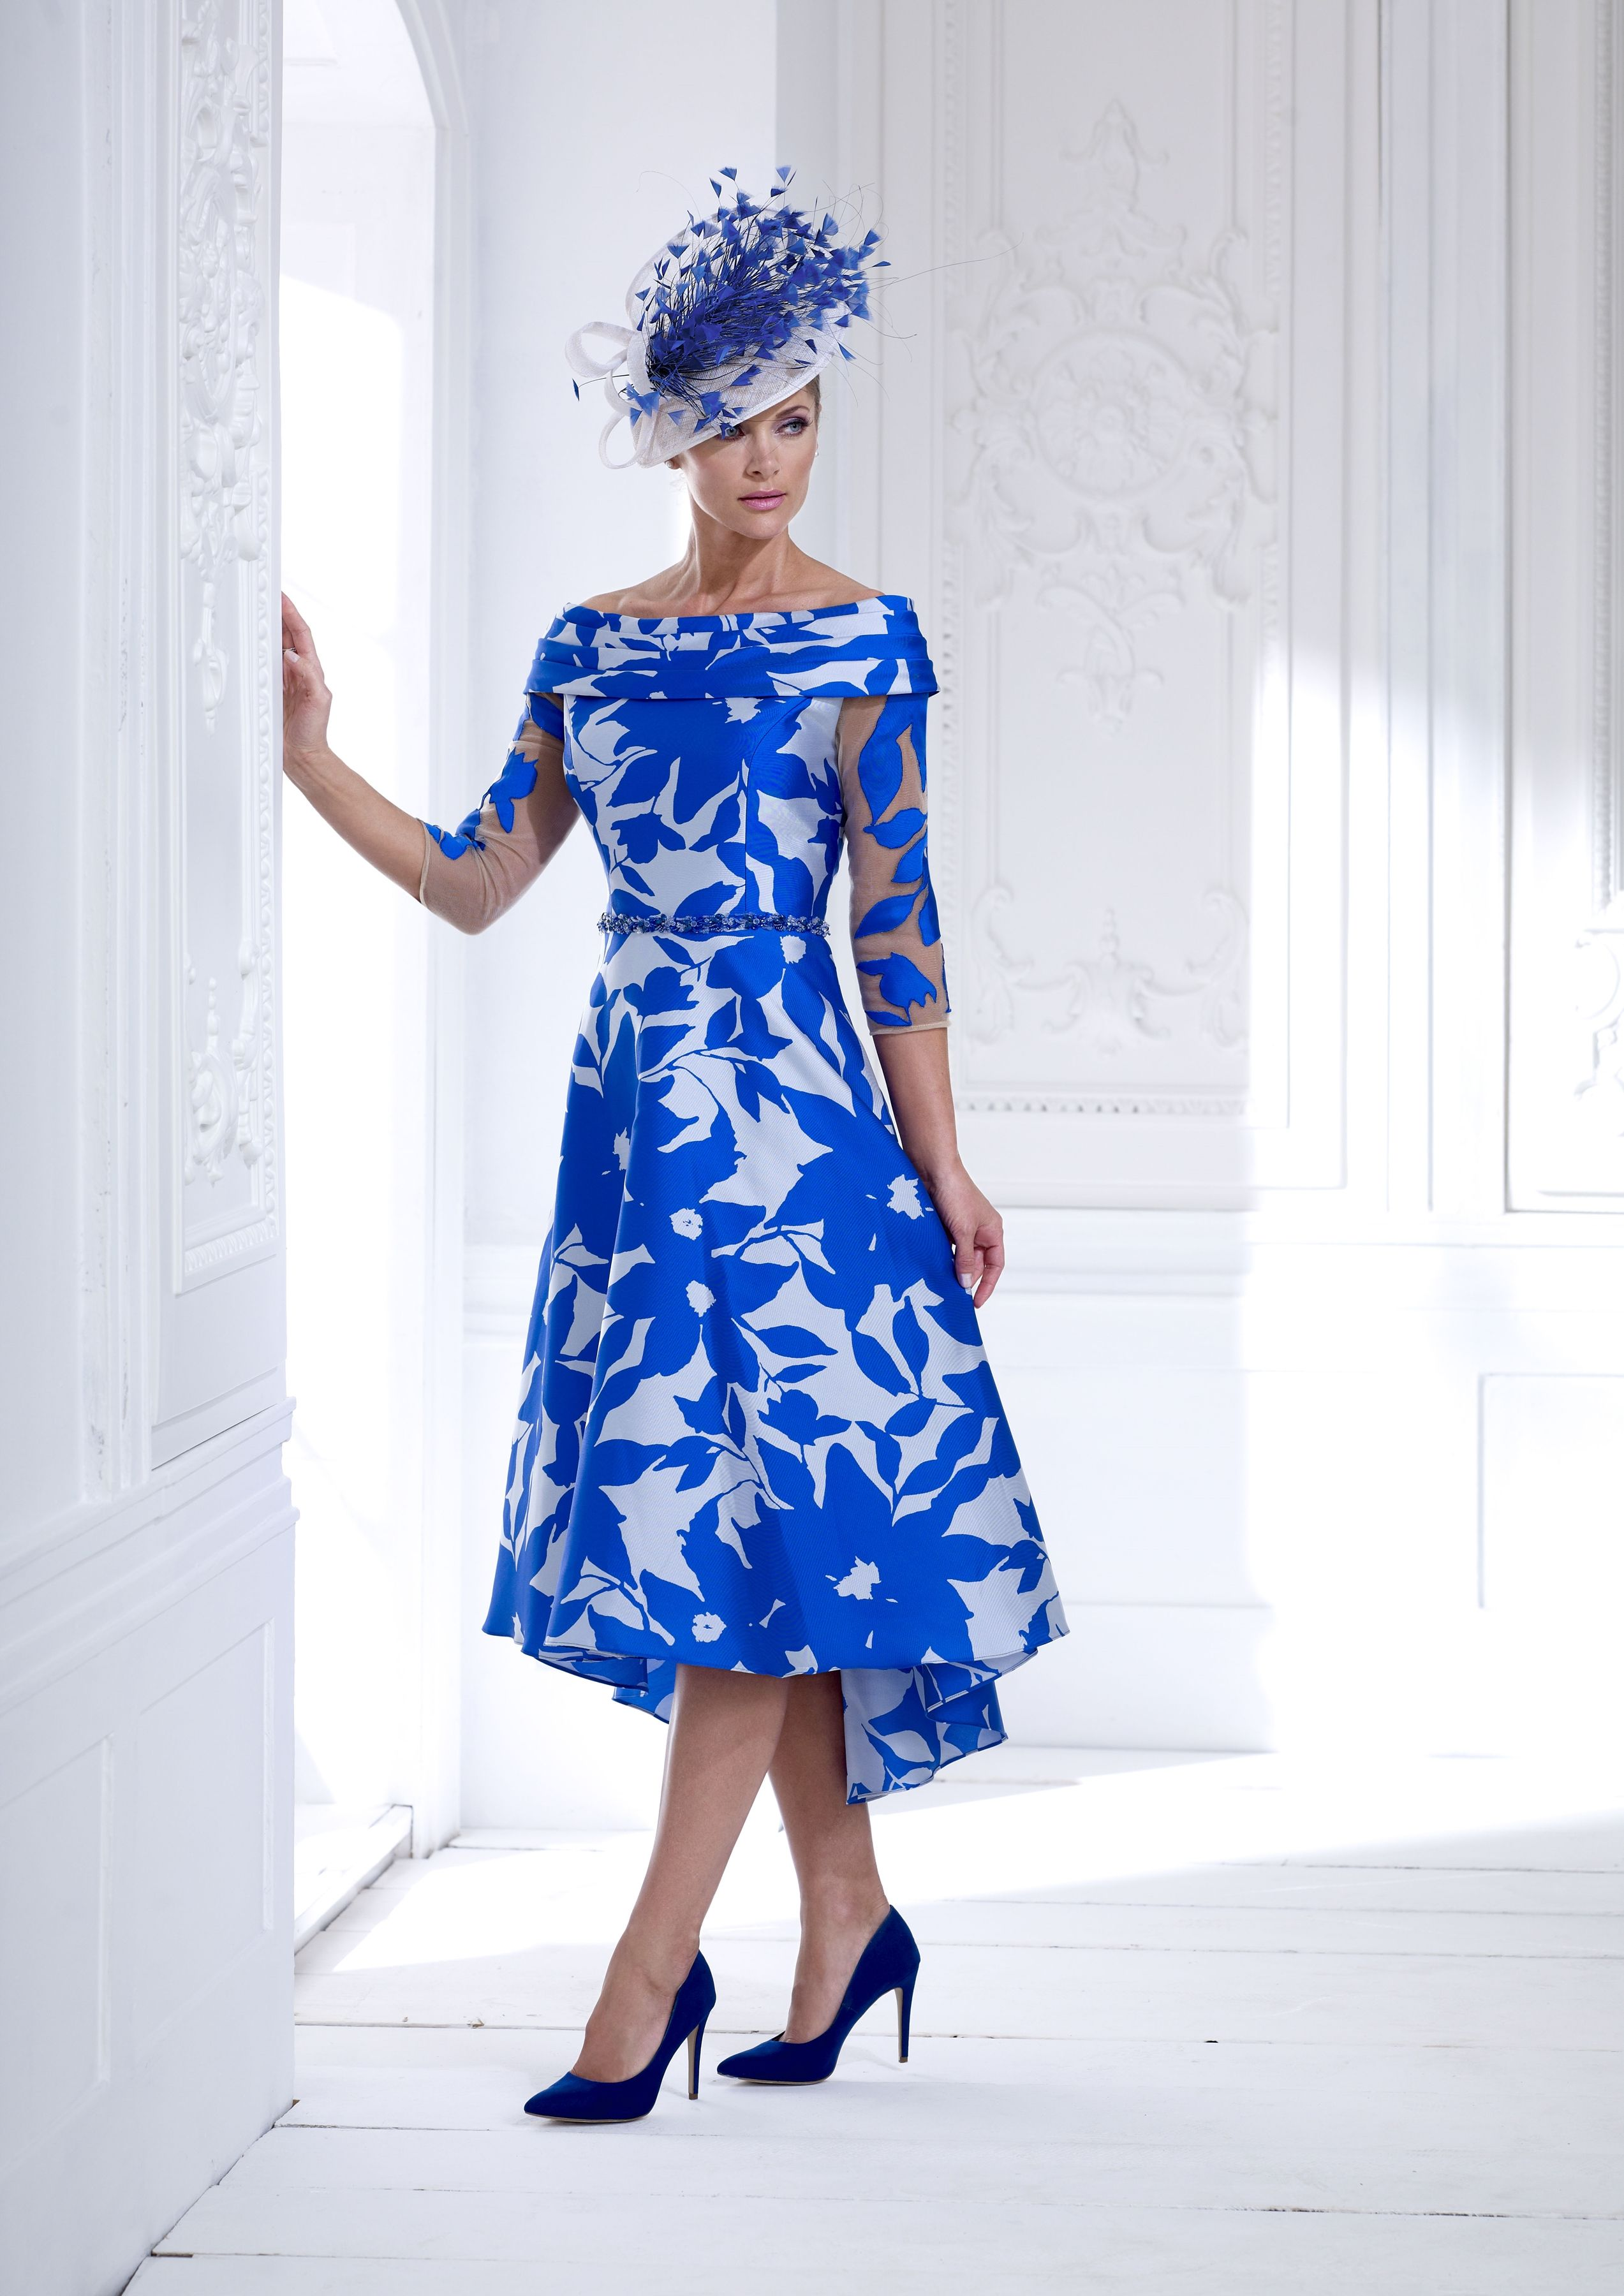 Ir4053 irresistible mother of groom dresses mother of